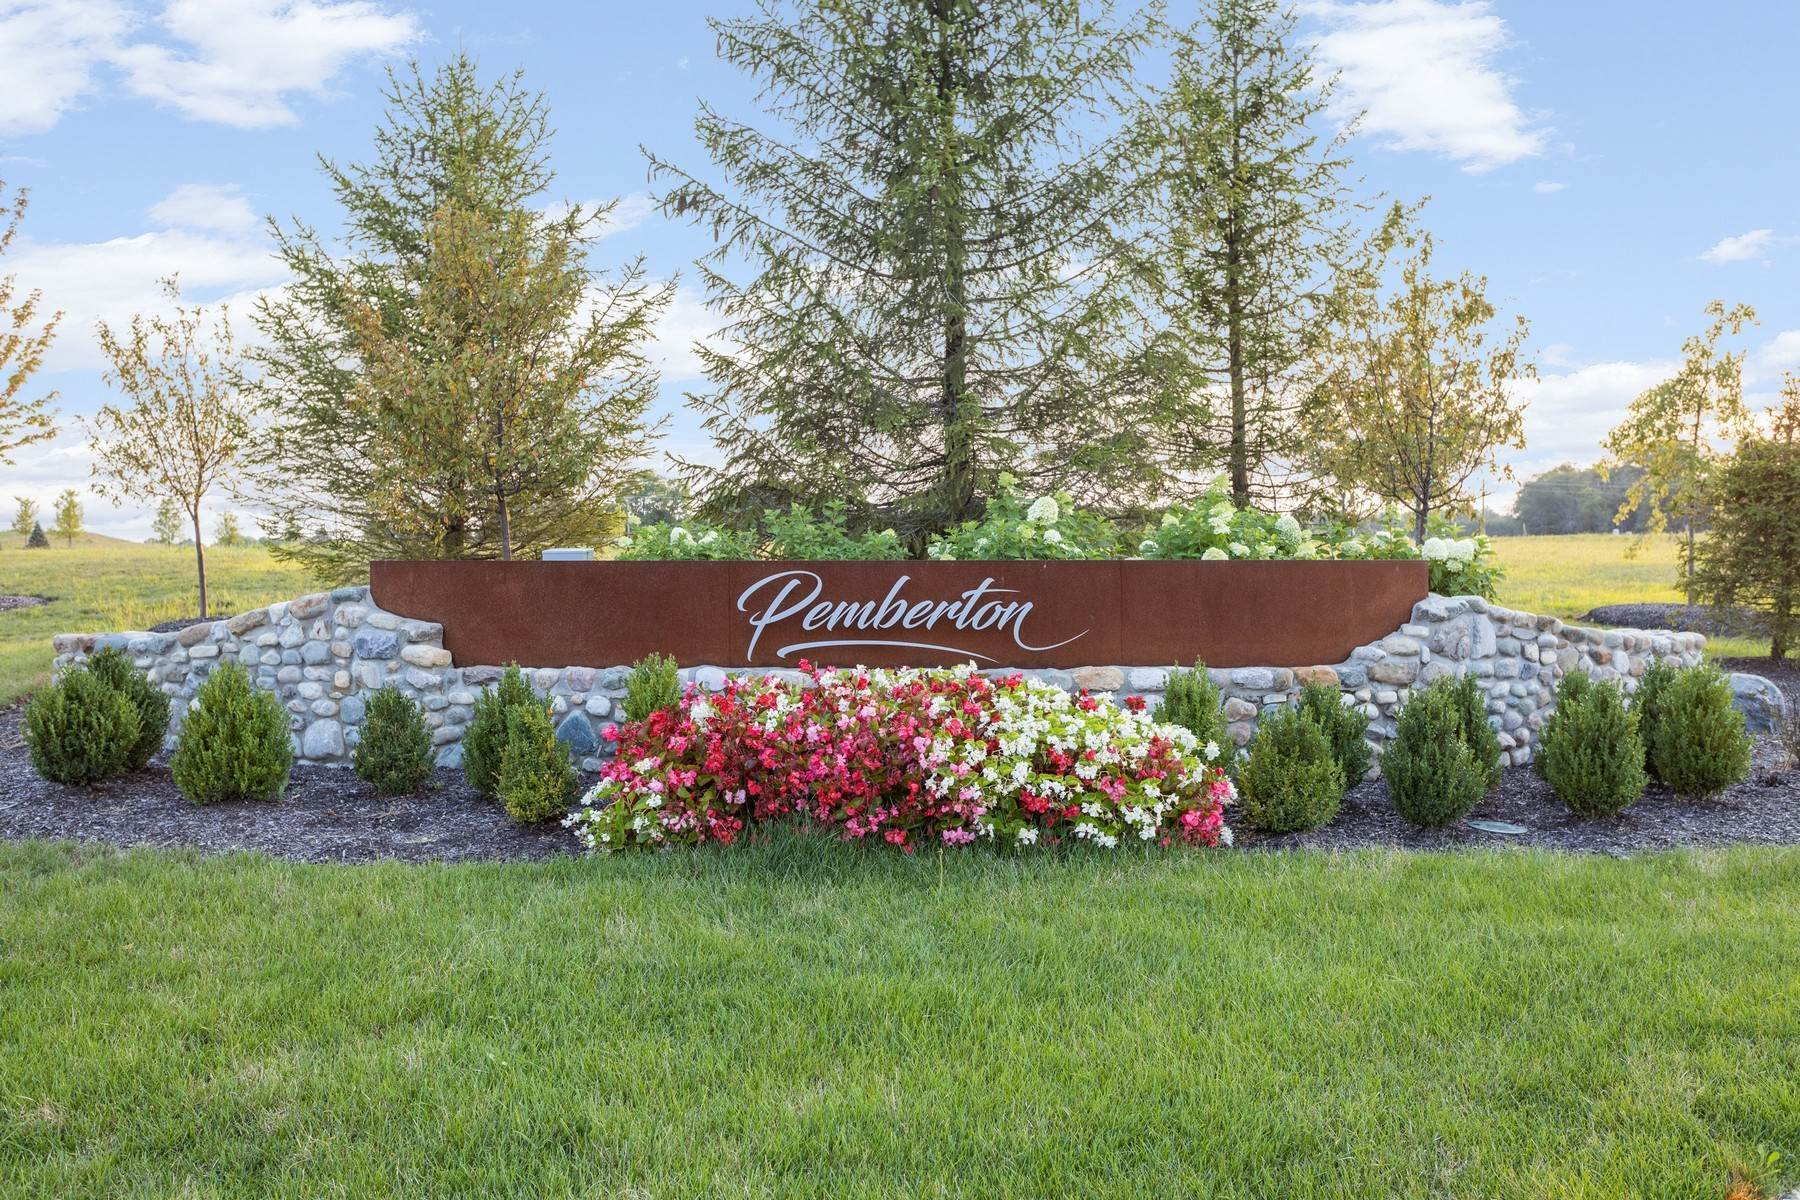 Terreno en New Zionsville's Development - Pemberton 8050 Totton Court Zionsville, Indiana 46077 Estados Unidos